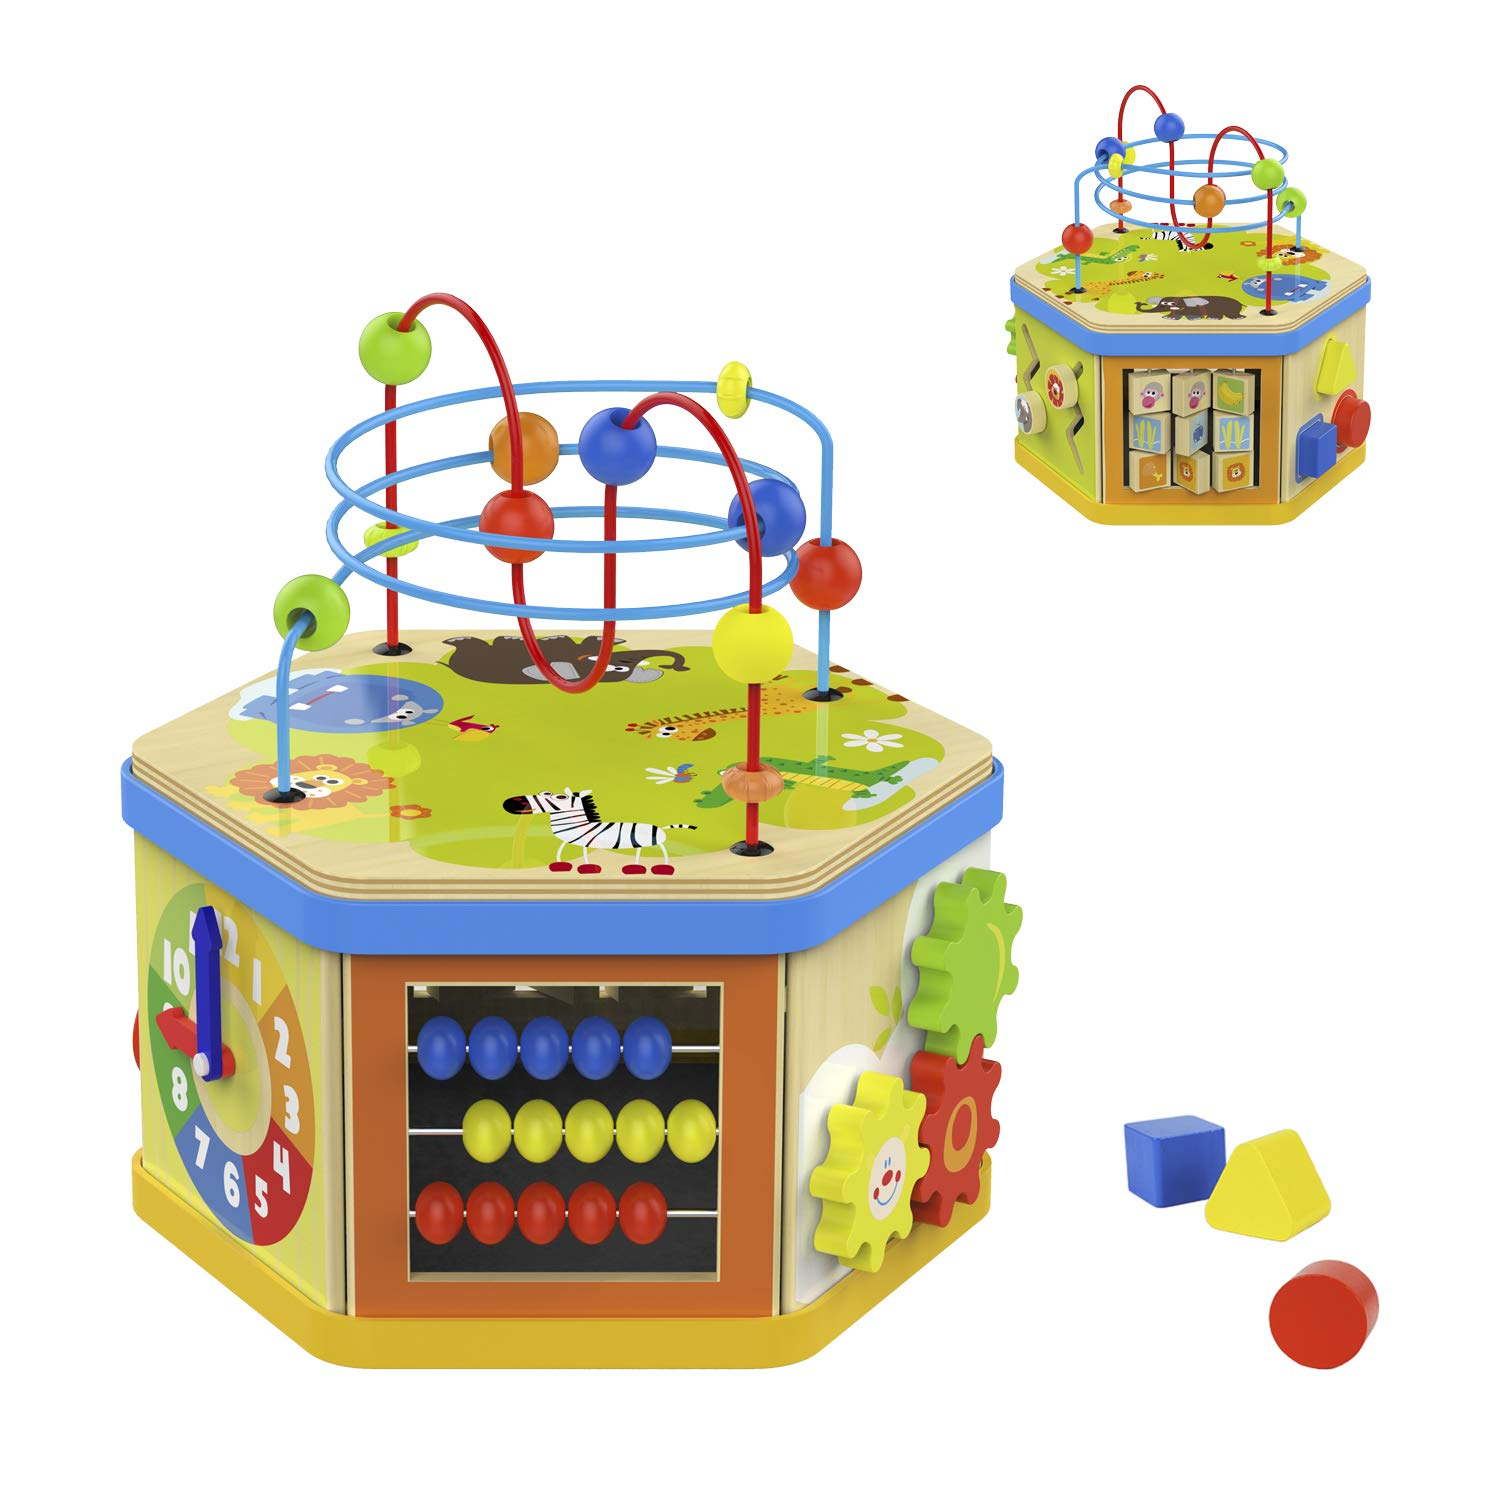 TOP BRIGHT Activity Cube Toys Baby Educational Wooden Bead Maze Shape Sorter 7-in-1 Toys for 1 Year Old Boy and Girl Toddlers Gift by TOP BRIGHT (Image #1)